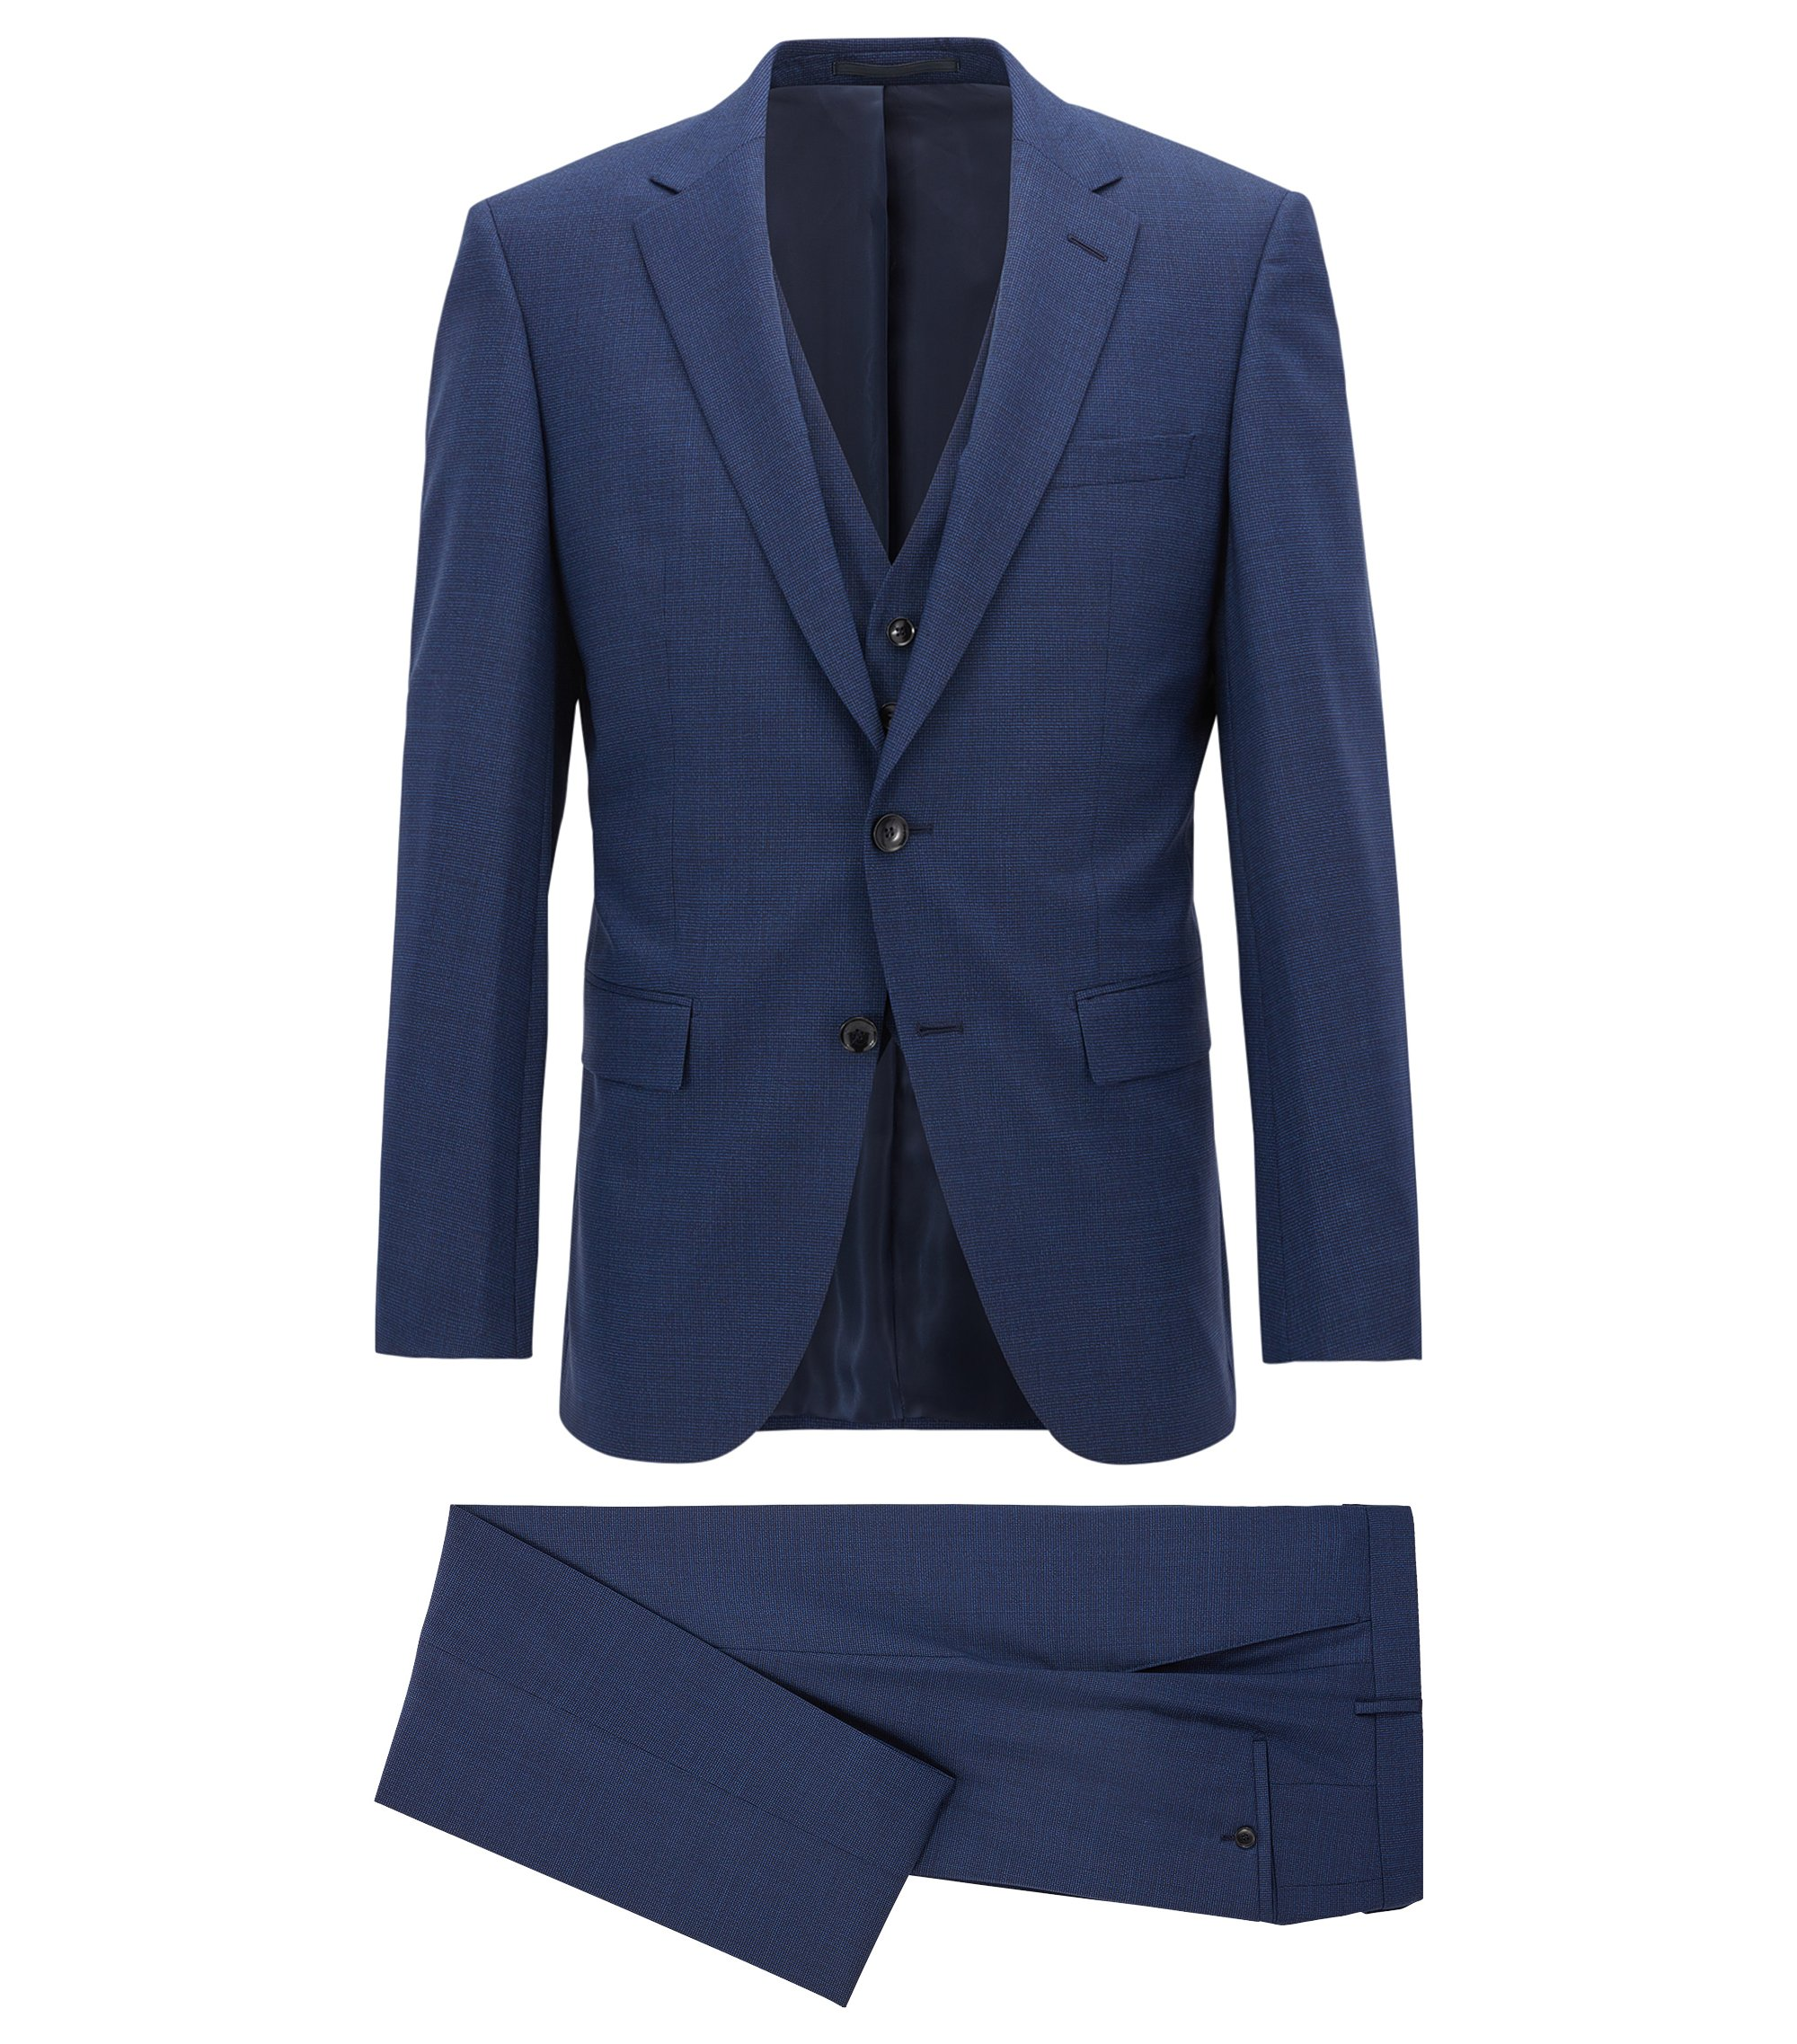 Virgin Wool 3-Piece Suit, Slim Fit | T-Harvers/Glover WE, Open Blue